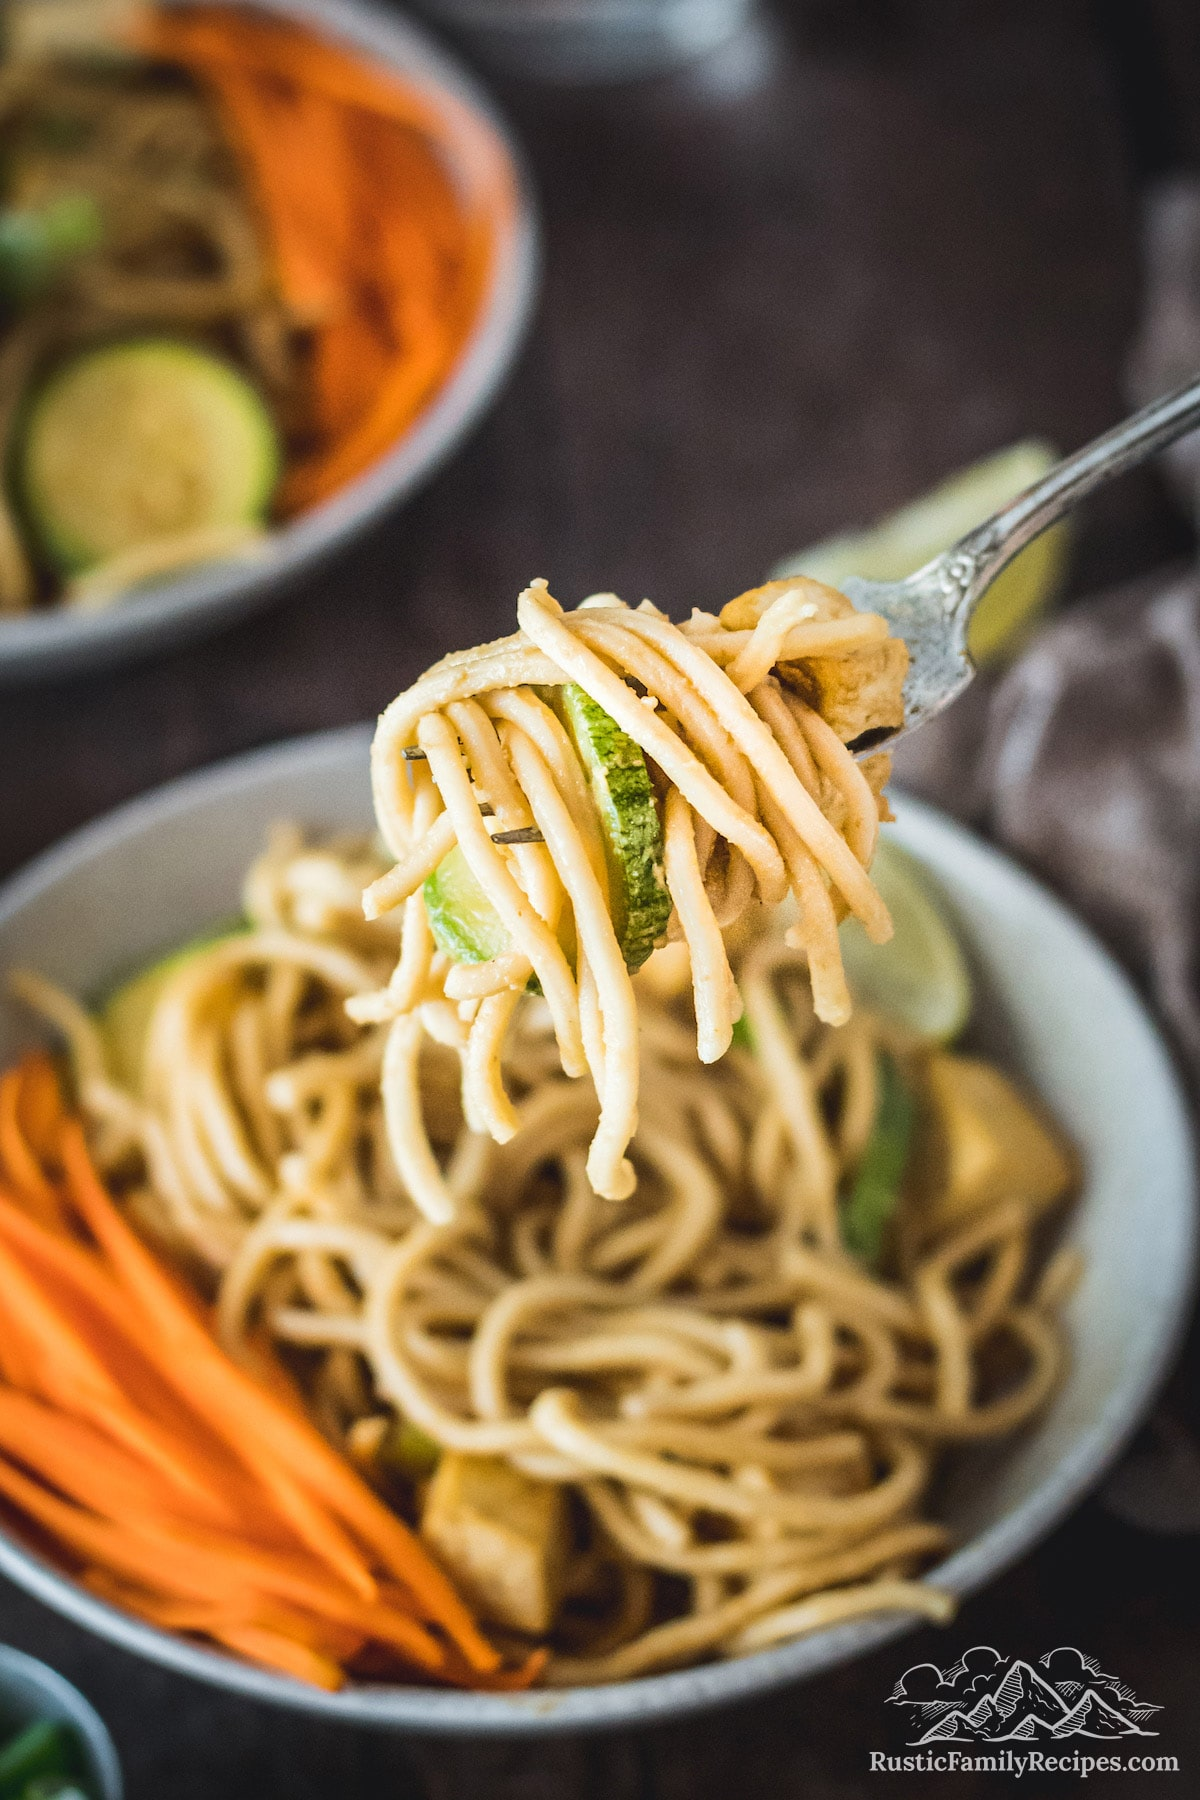 Peanut Noodles and zucchini on fork